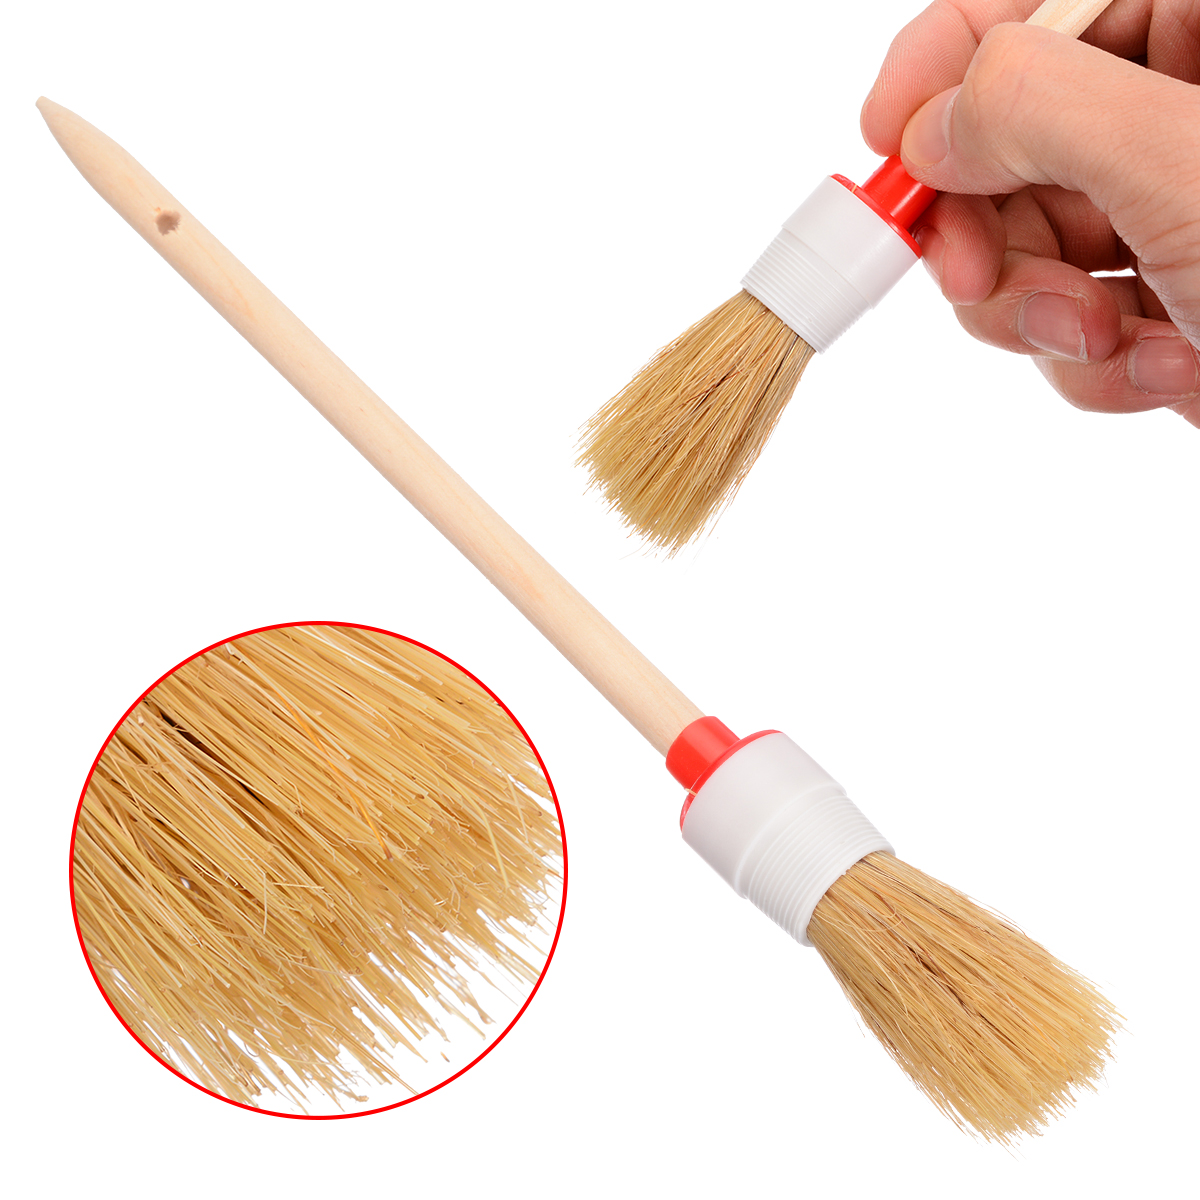 Car Brush Soft Bristle Wood Handle Auto Care for Interior Dashboard Rims Wheel Air Conditioning Engine Wash Brush-in Sponges, Cloths & Brushes from Automobiles & Motorcycles